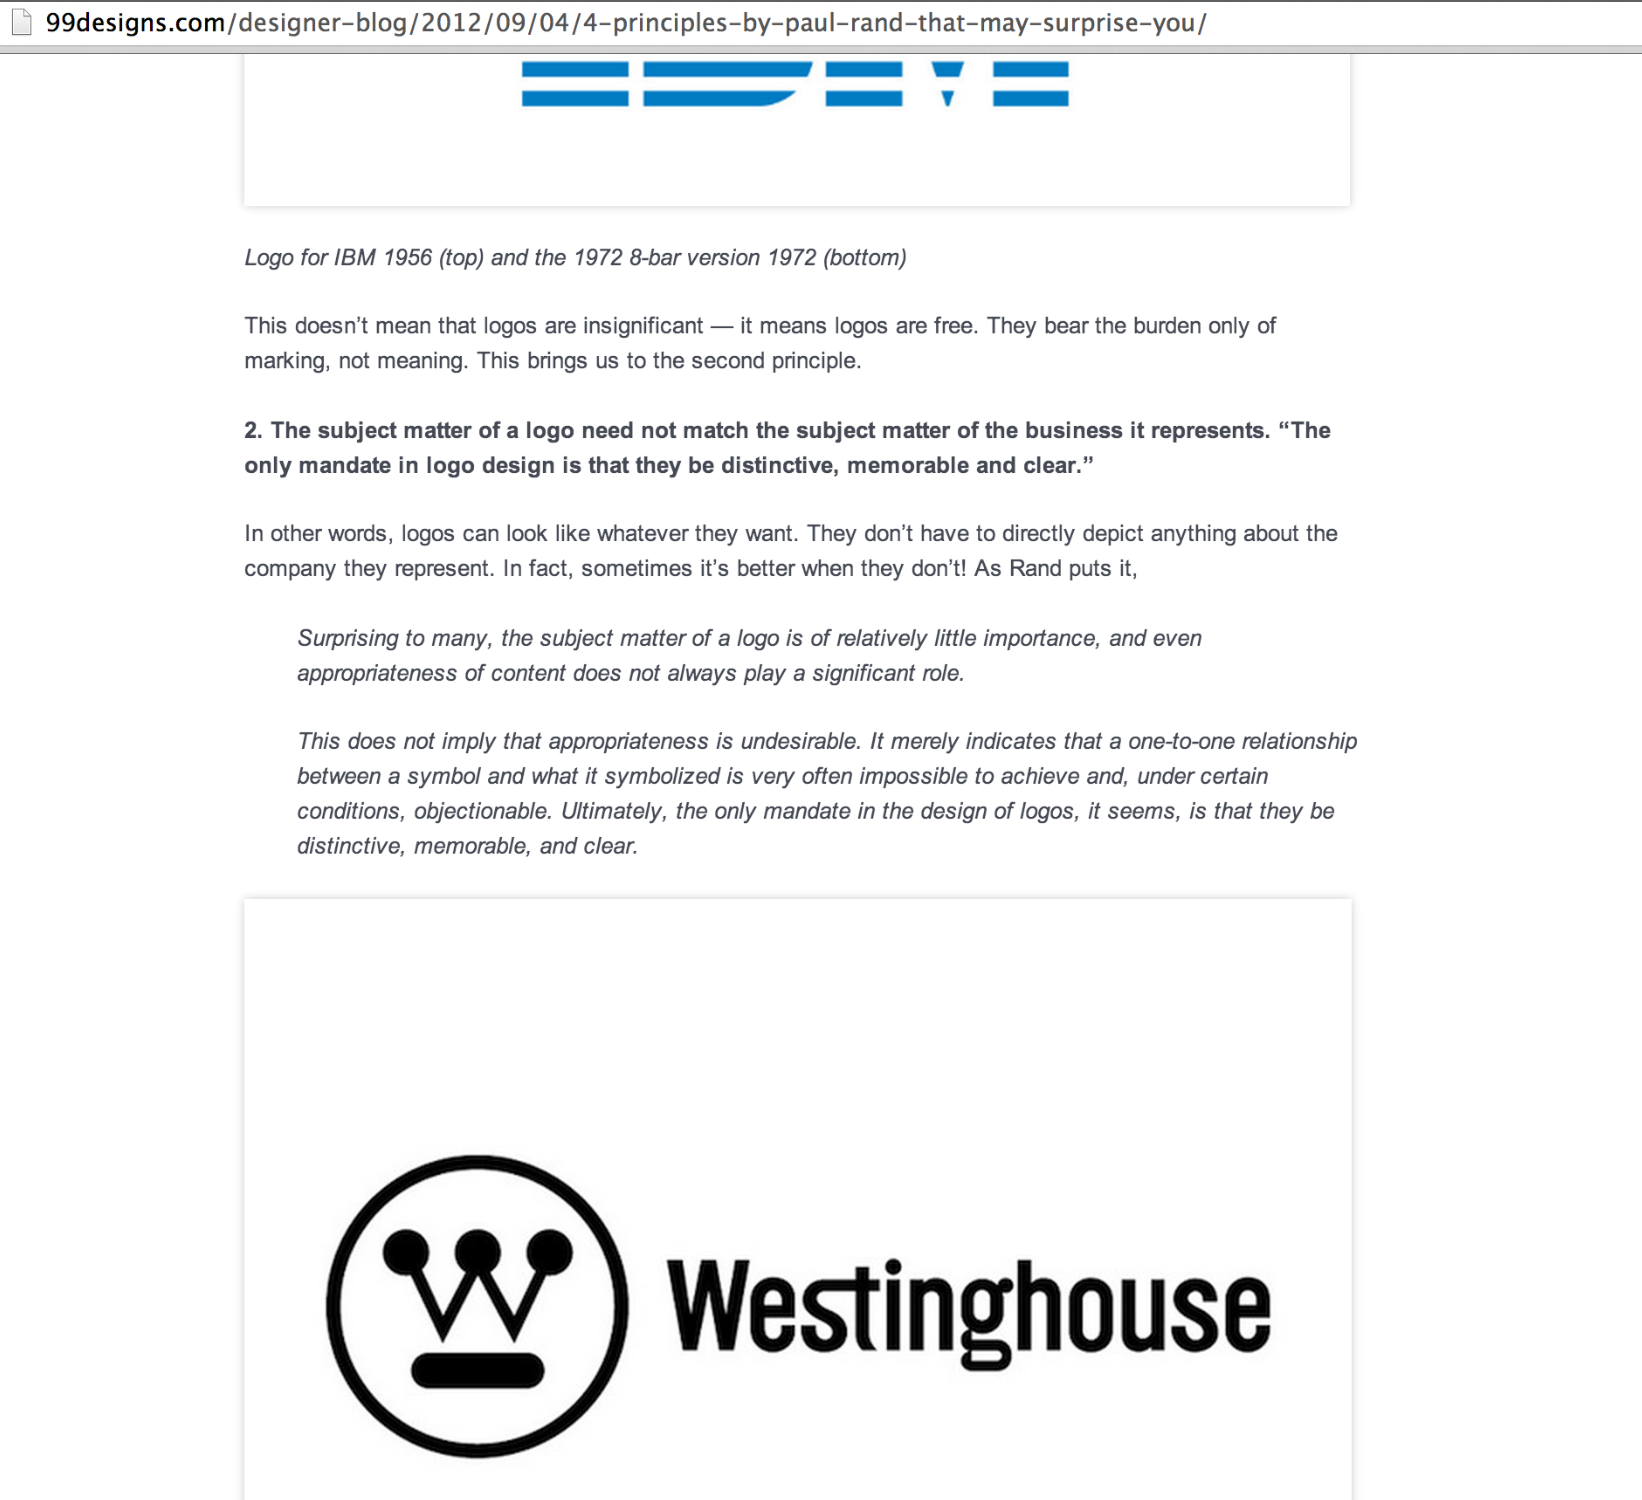 Some Of The Research I Did On Paul Rand And Examples Of His Logos